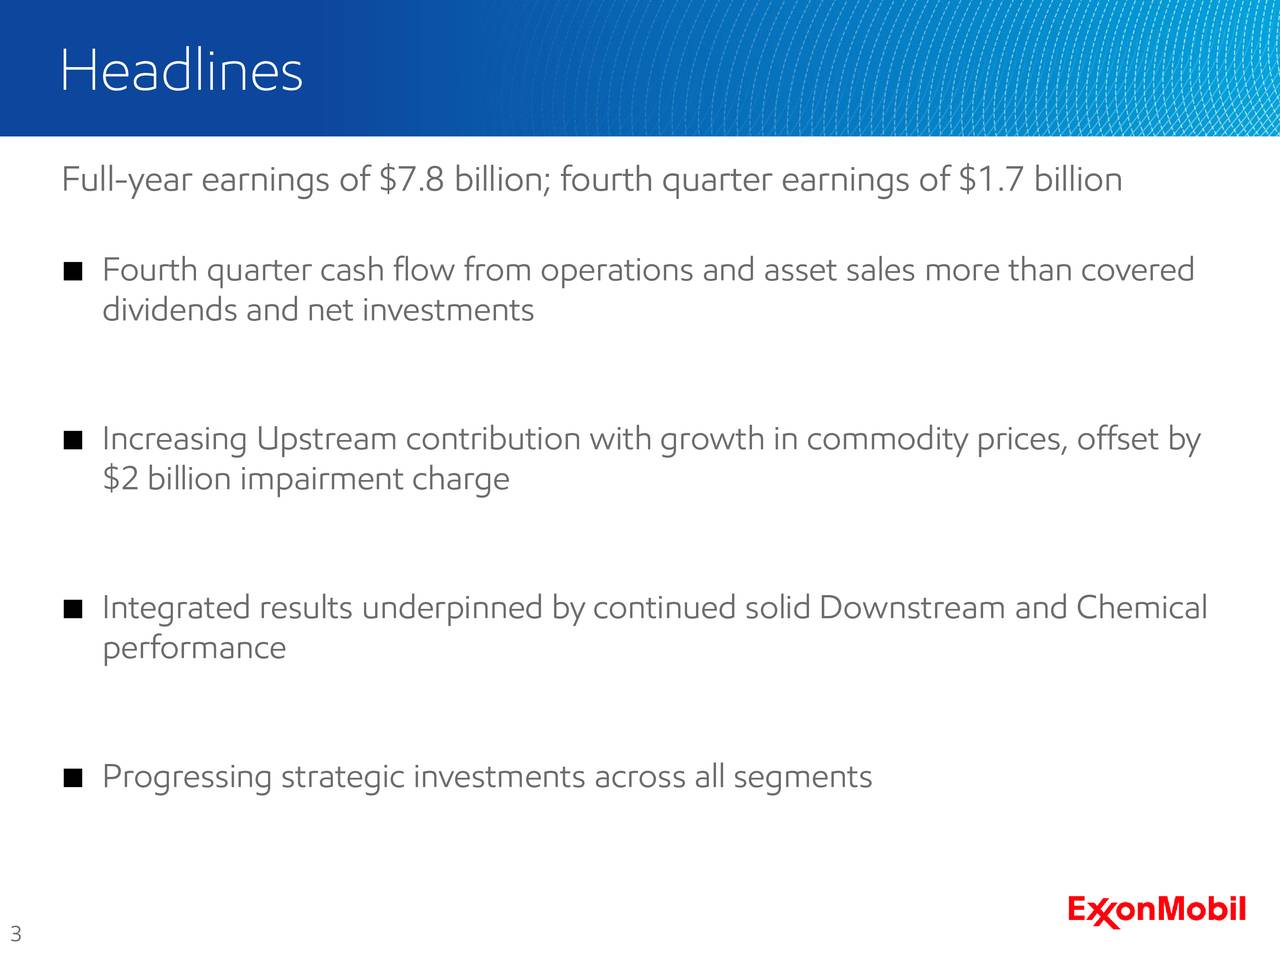 Full-year earnings of $7.8 billion; fourth quarter earnings of $1.7 billion Fourth quarter cash flow from operations and asset sales more than covered dividends and net investments Increasing Upstream contribution with growth in commodity prices, offset by $2 billion impairment charge Integrated results underpinned by continued solid Downstream and Chemical performance Progressing strategic investments across all segments 3